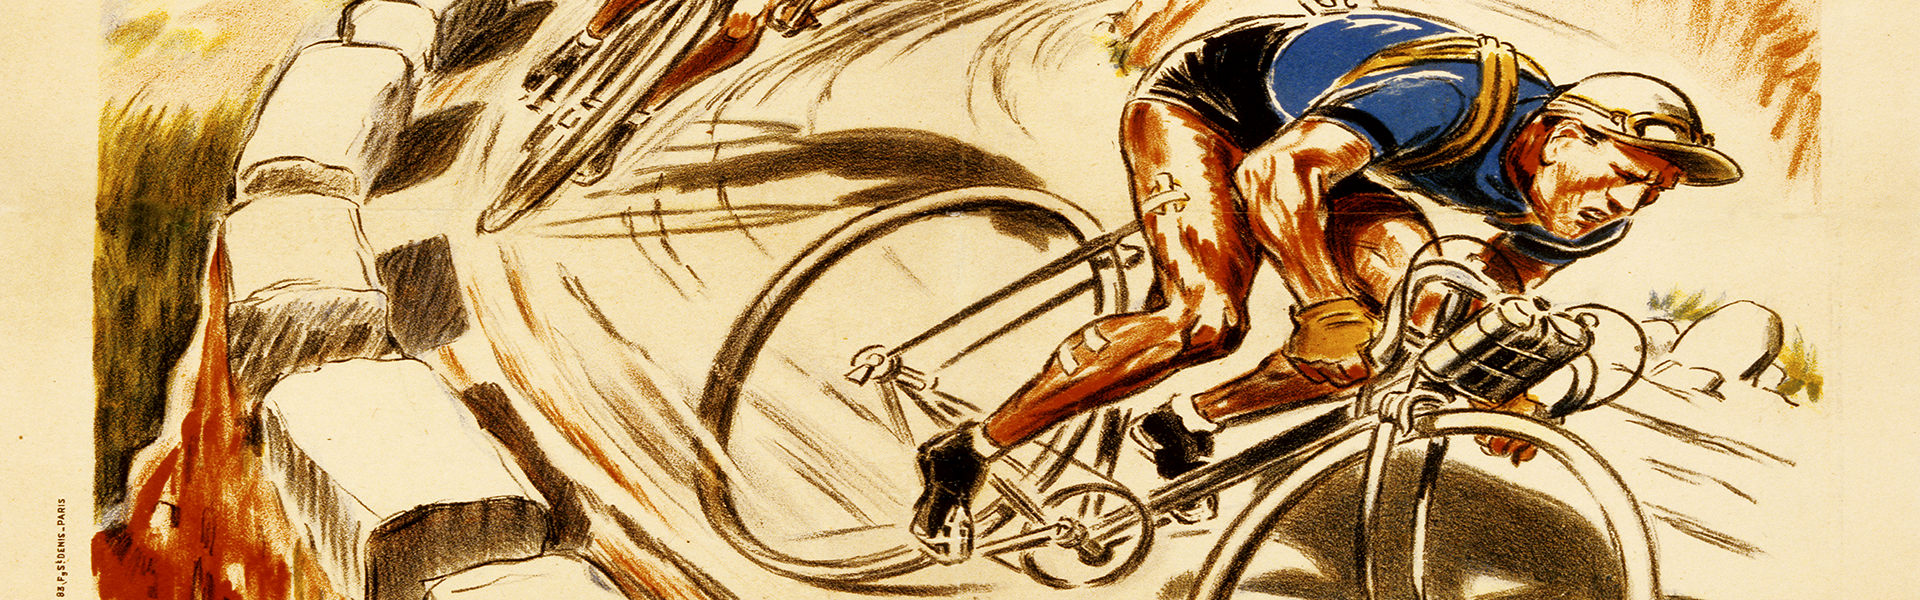 Vintage Bicycle Art | Cycling Artwork | Bike Posters